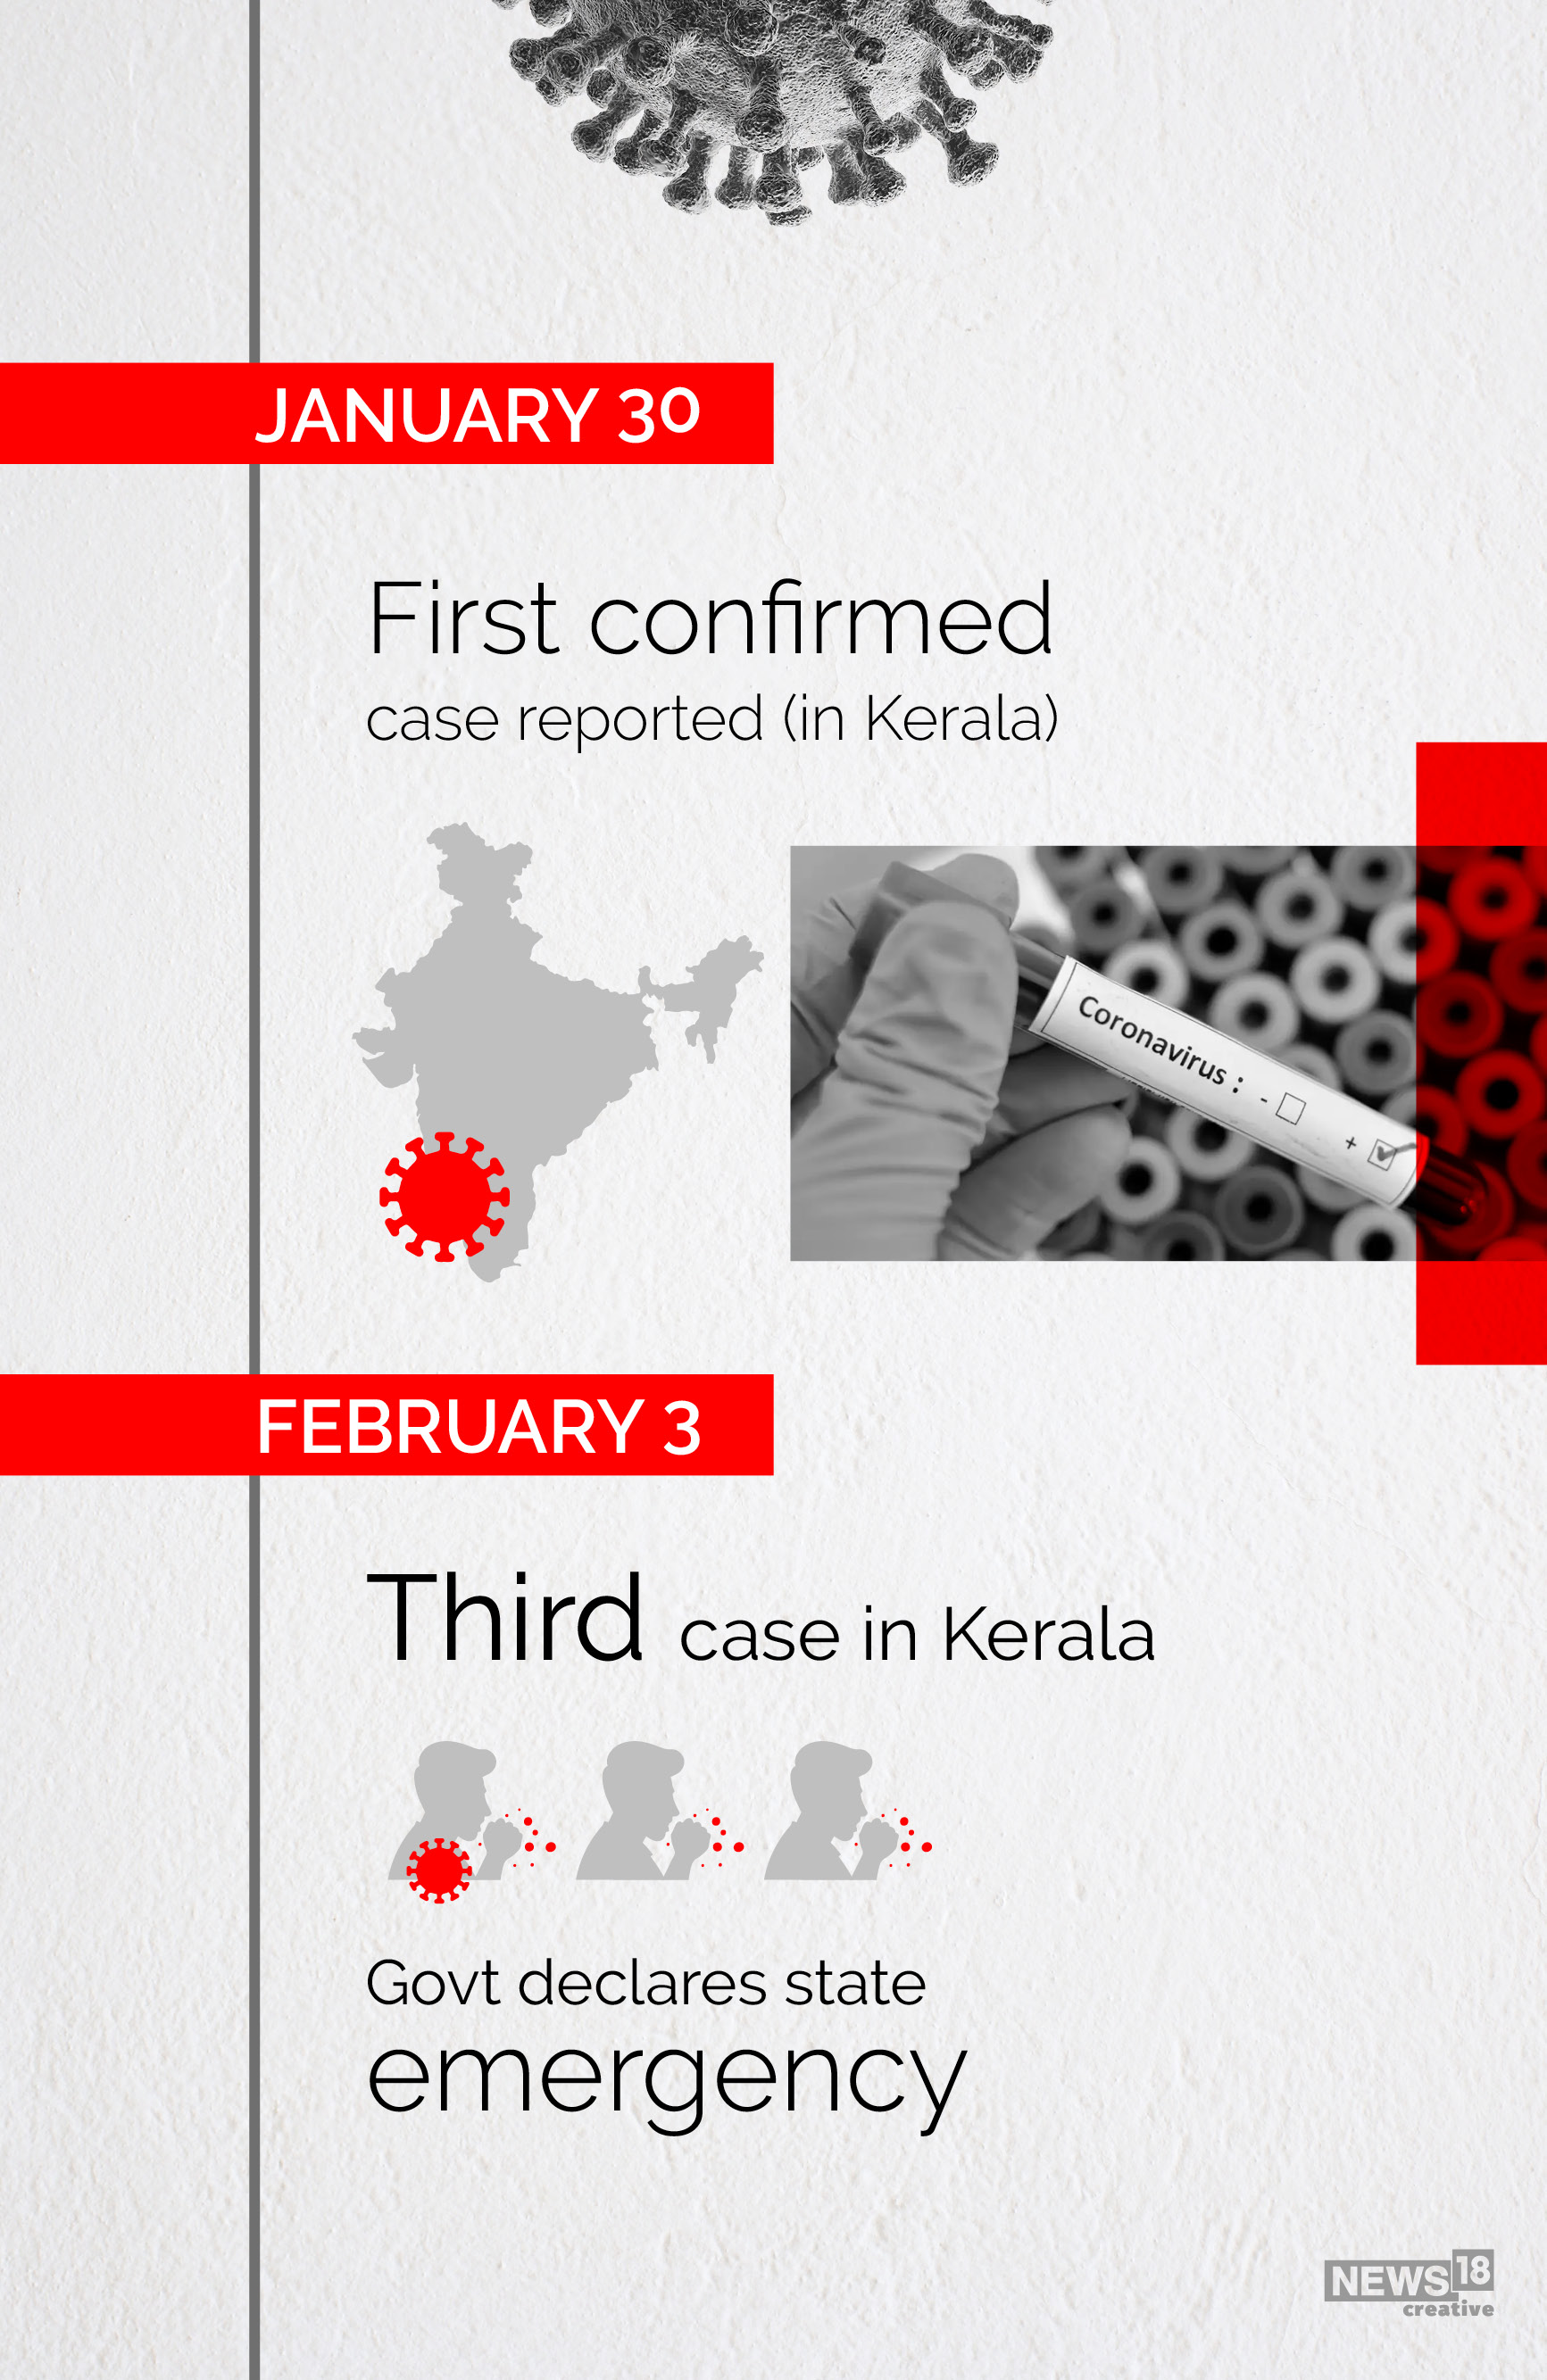 Coronavirus India Timeline From First Covid 19 Case In Kerala To Over 3 Million Cases Today Cnbctv18 Com